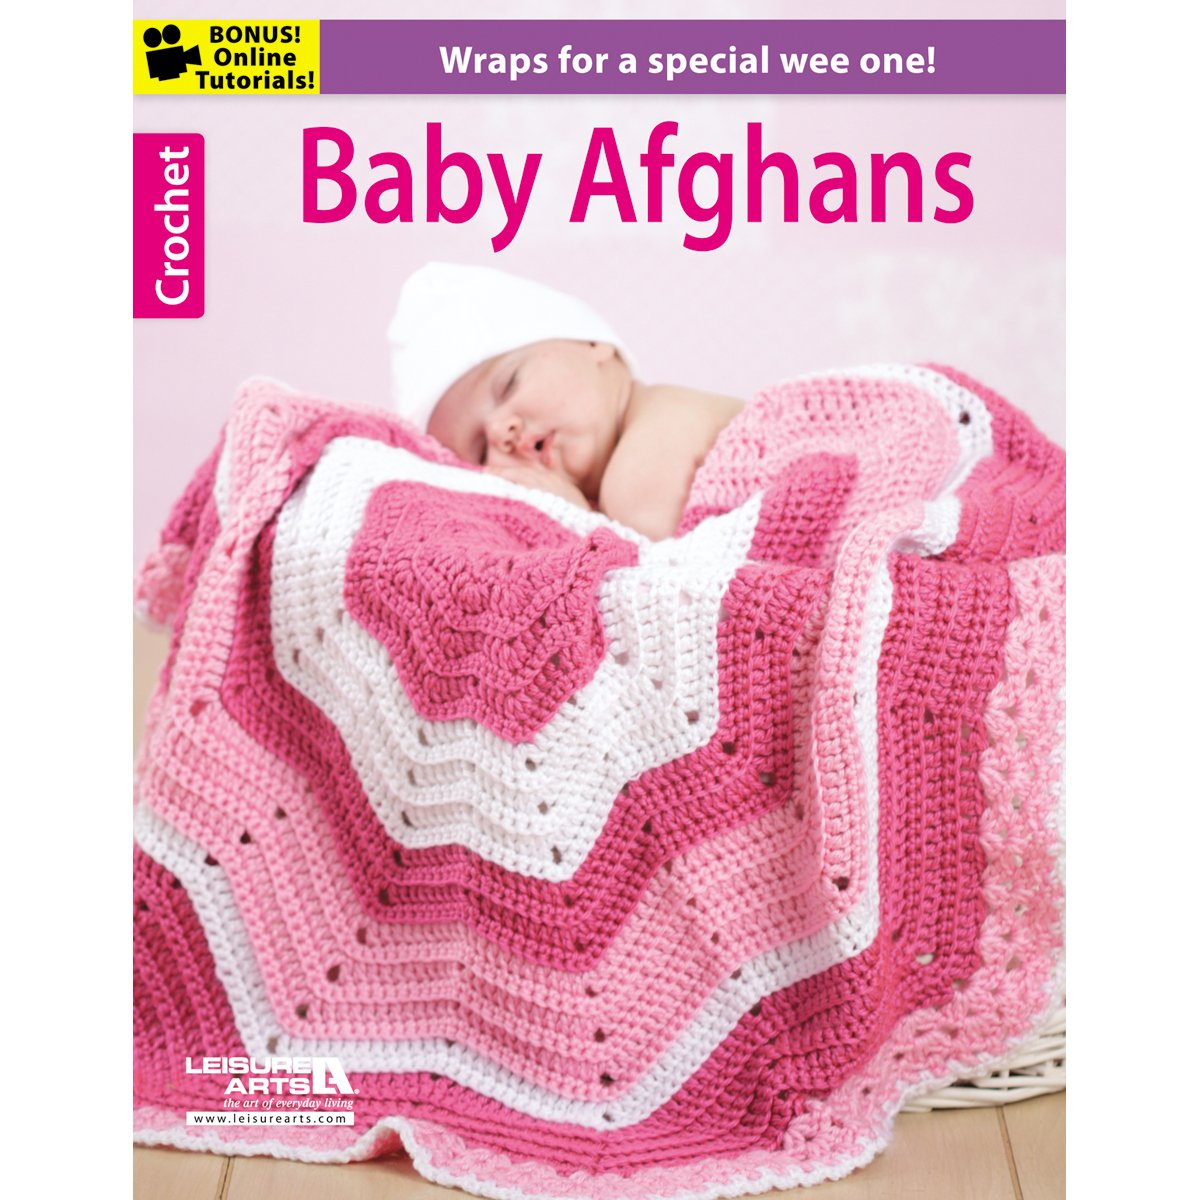 Leisure Arts Baby Afghans Knit